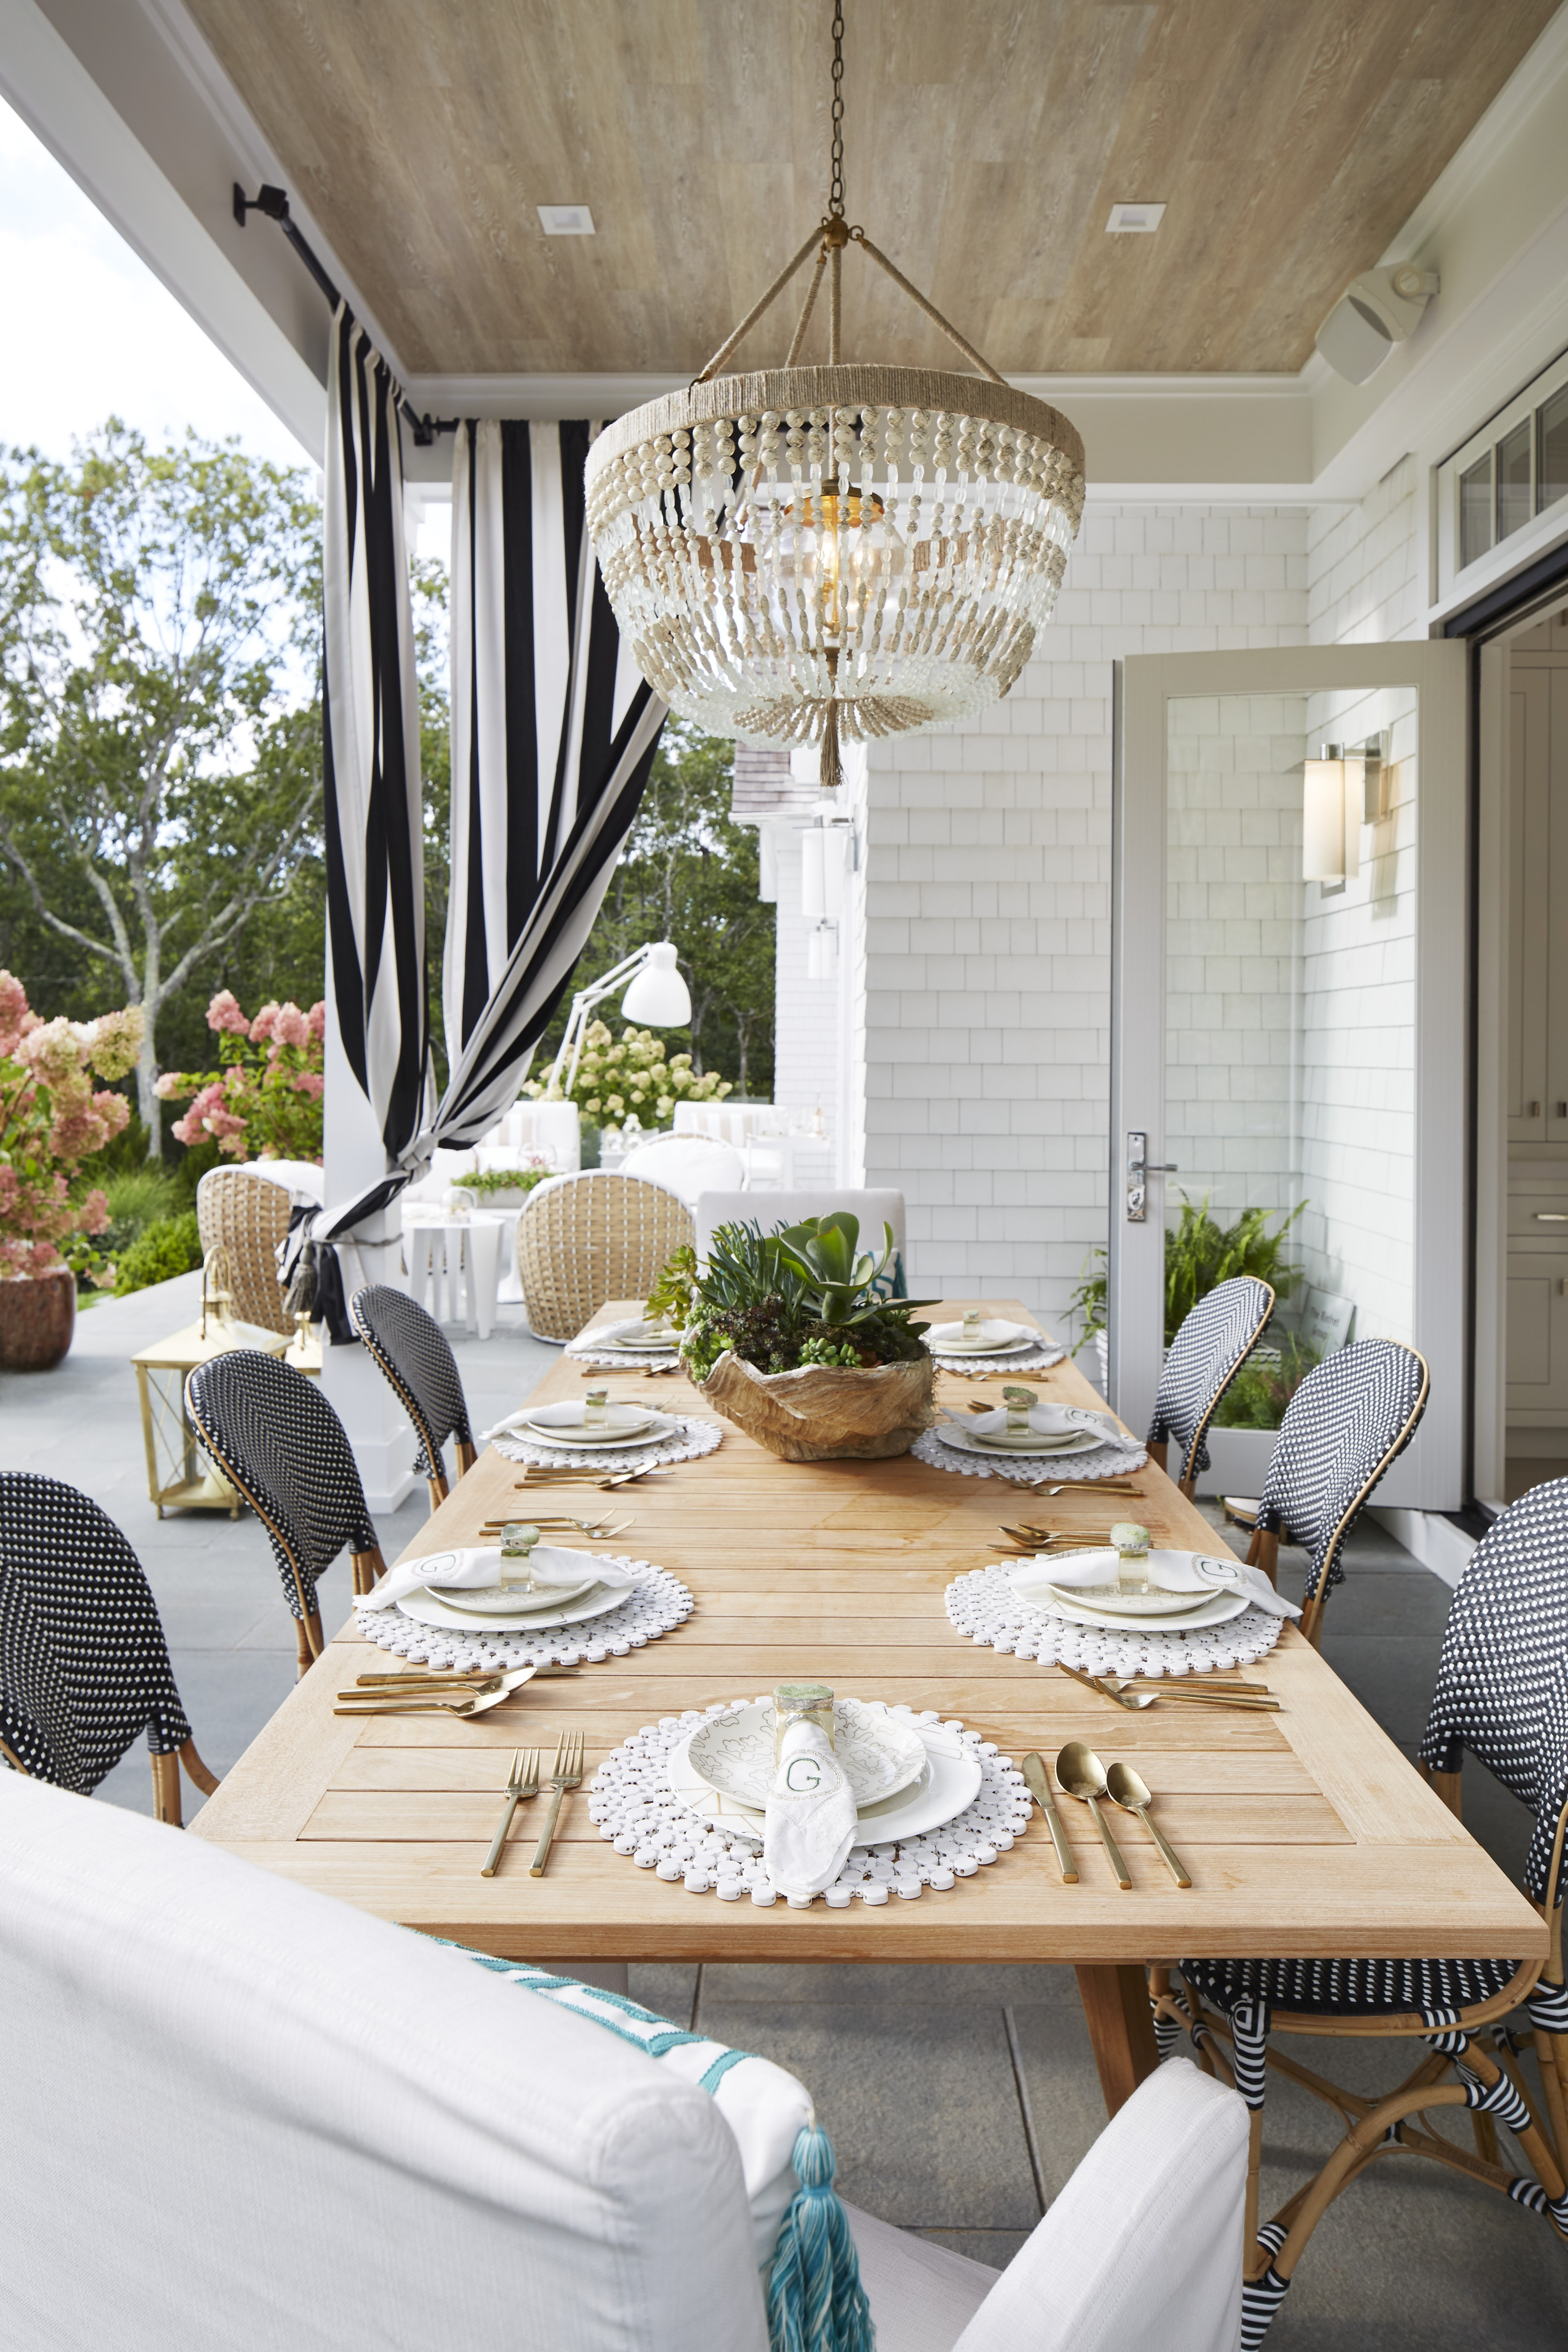 Blurring the lines between in-and outdoor living spaces, the kitchen and breakfast area open to a patio that's perfect for dining al fresco in the summer and fall.